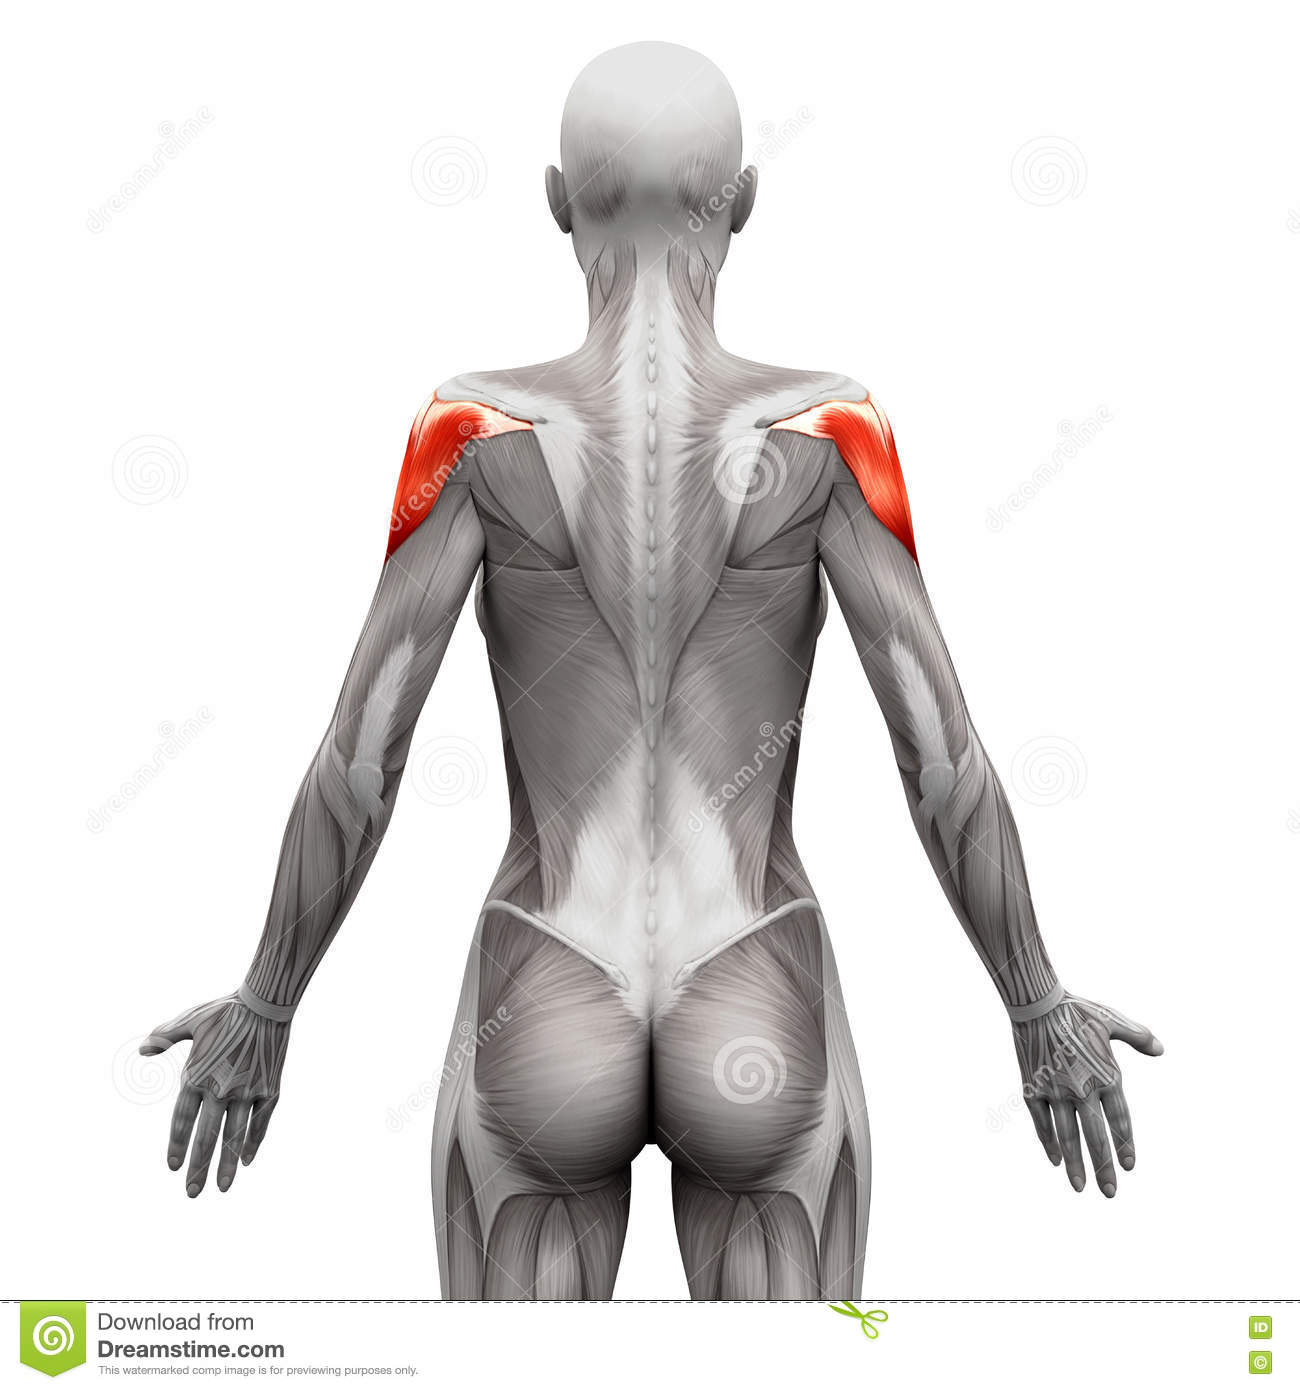 Deltoid Muscle - Anatomy Muscles Isolated On White - 3D Illustra ...